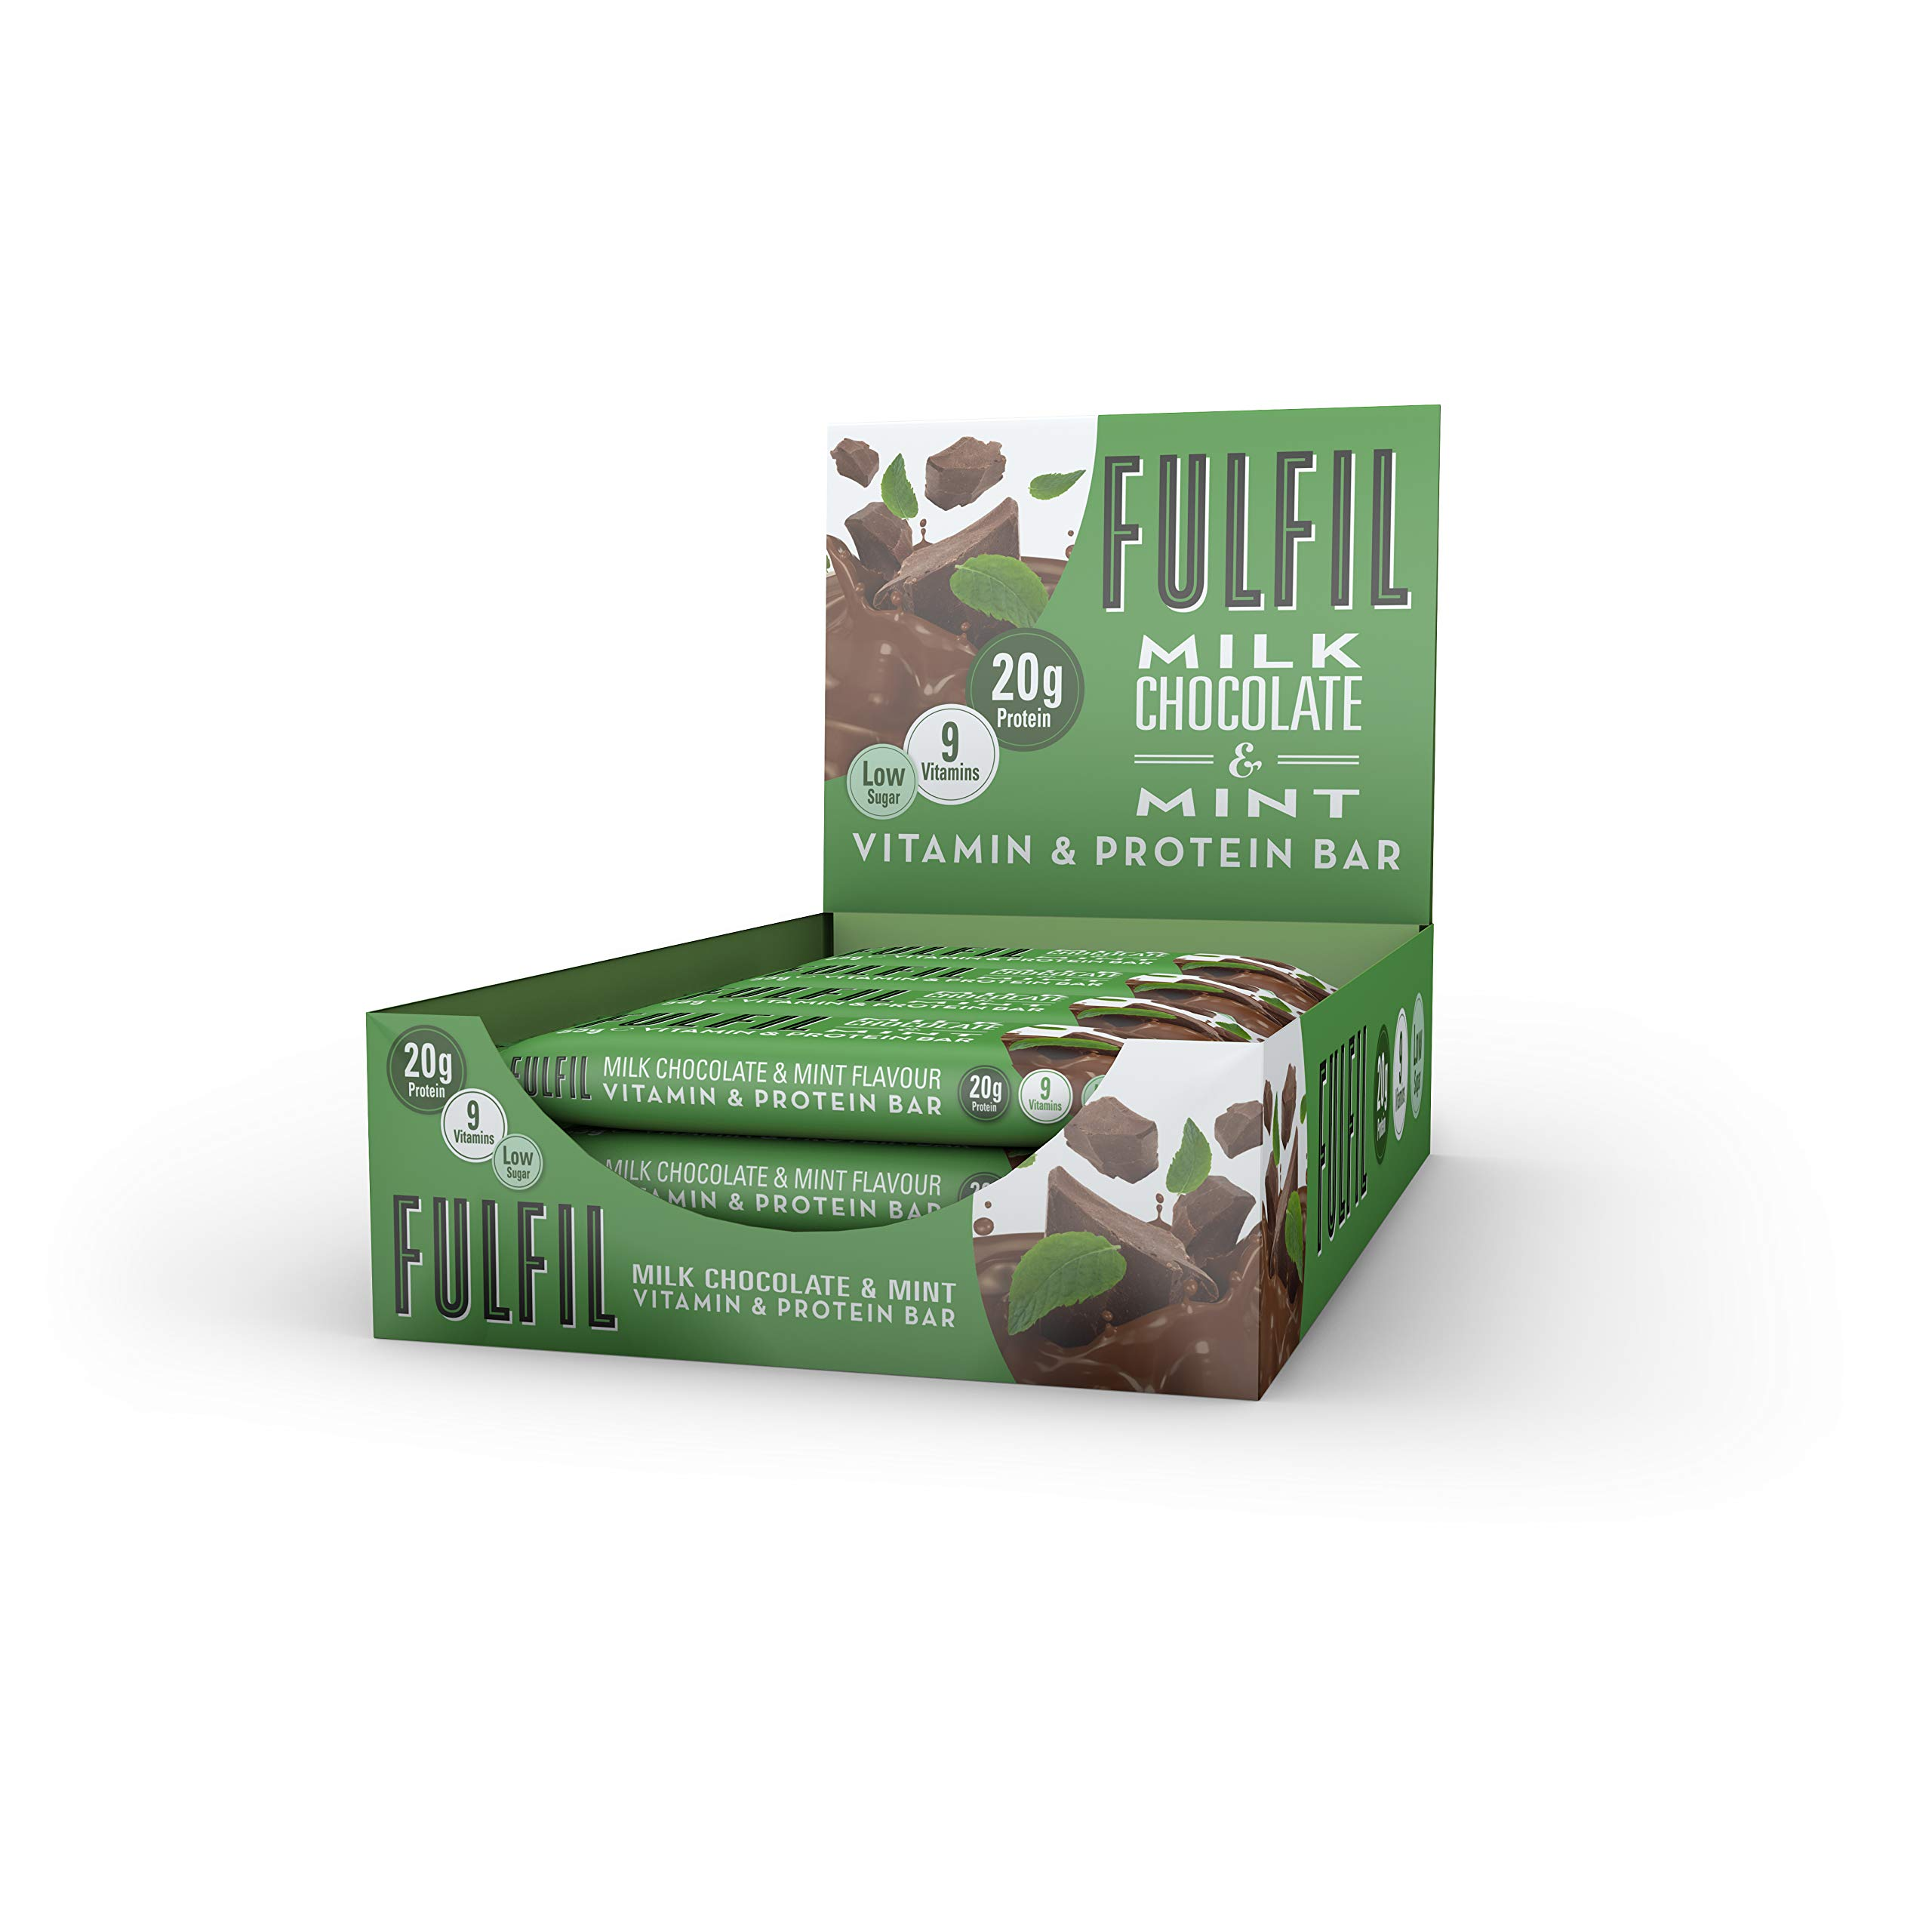 Fulfil Milk Chocolate & Mint Vitamin and Protein Bar - Pack of 15 by Fulfil